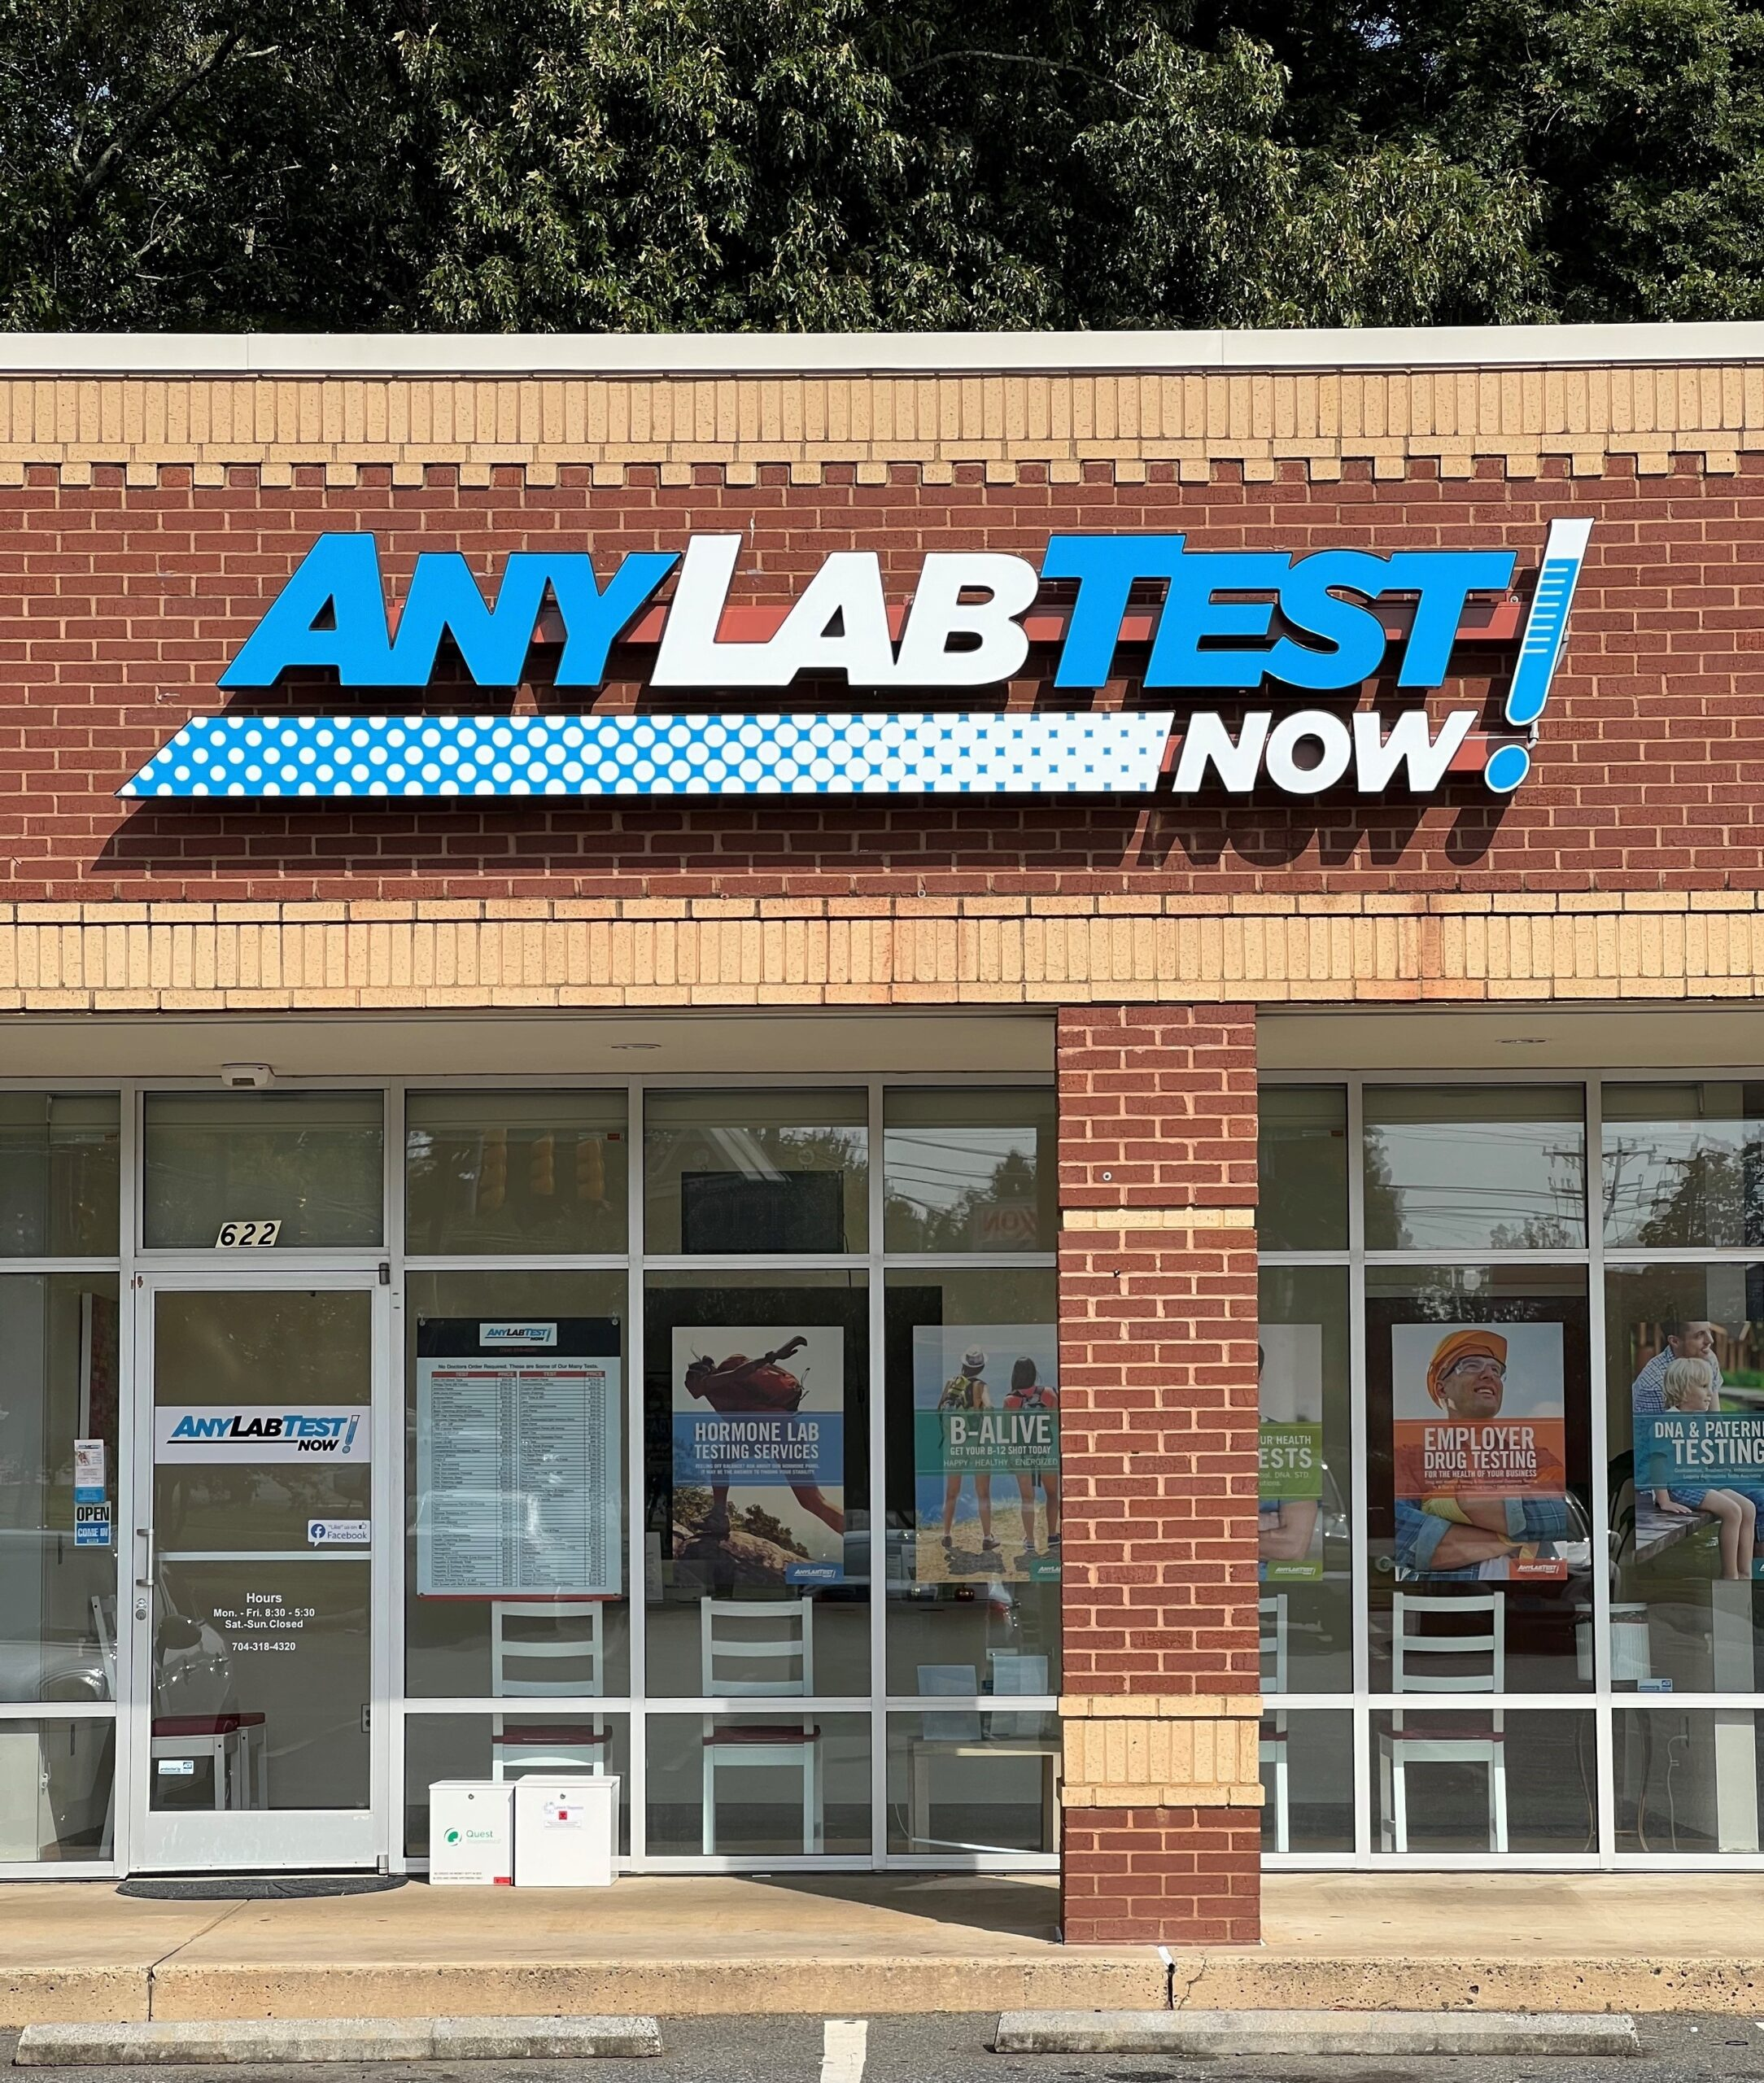 Custom Made Channel Letter Sign for Any Lab Test Now of Indian Trail, NC – by JC Signs